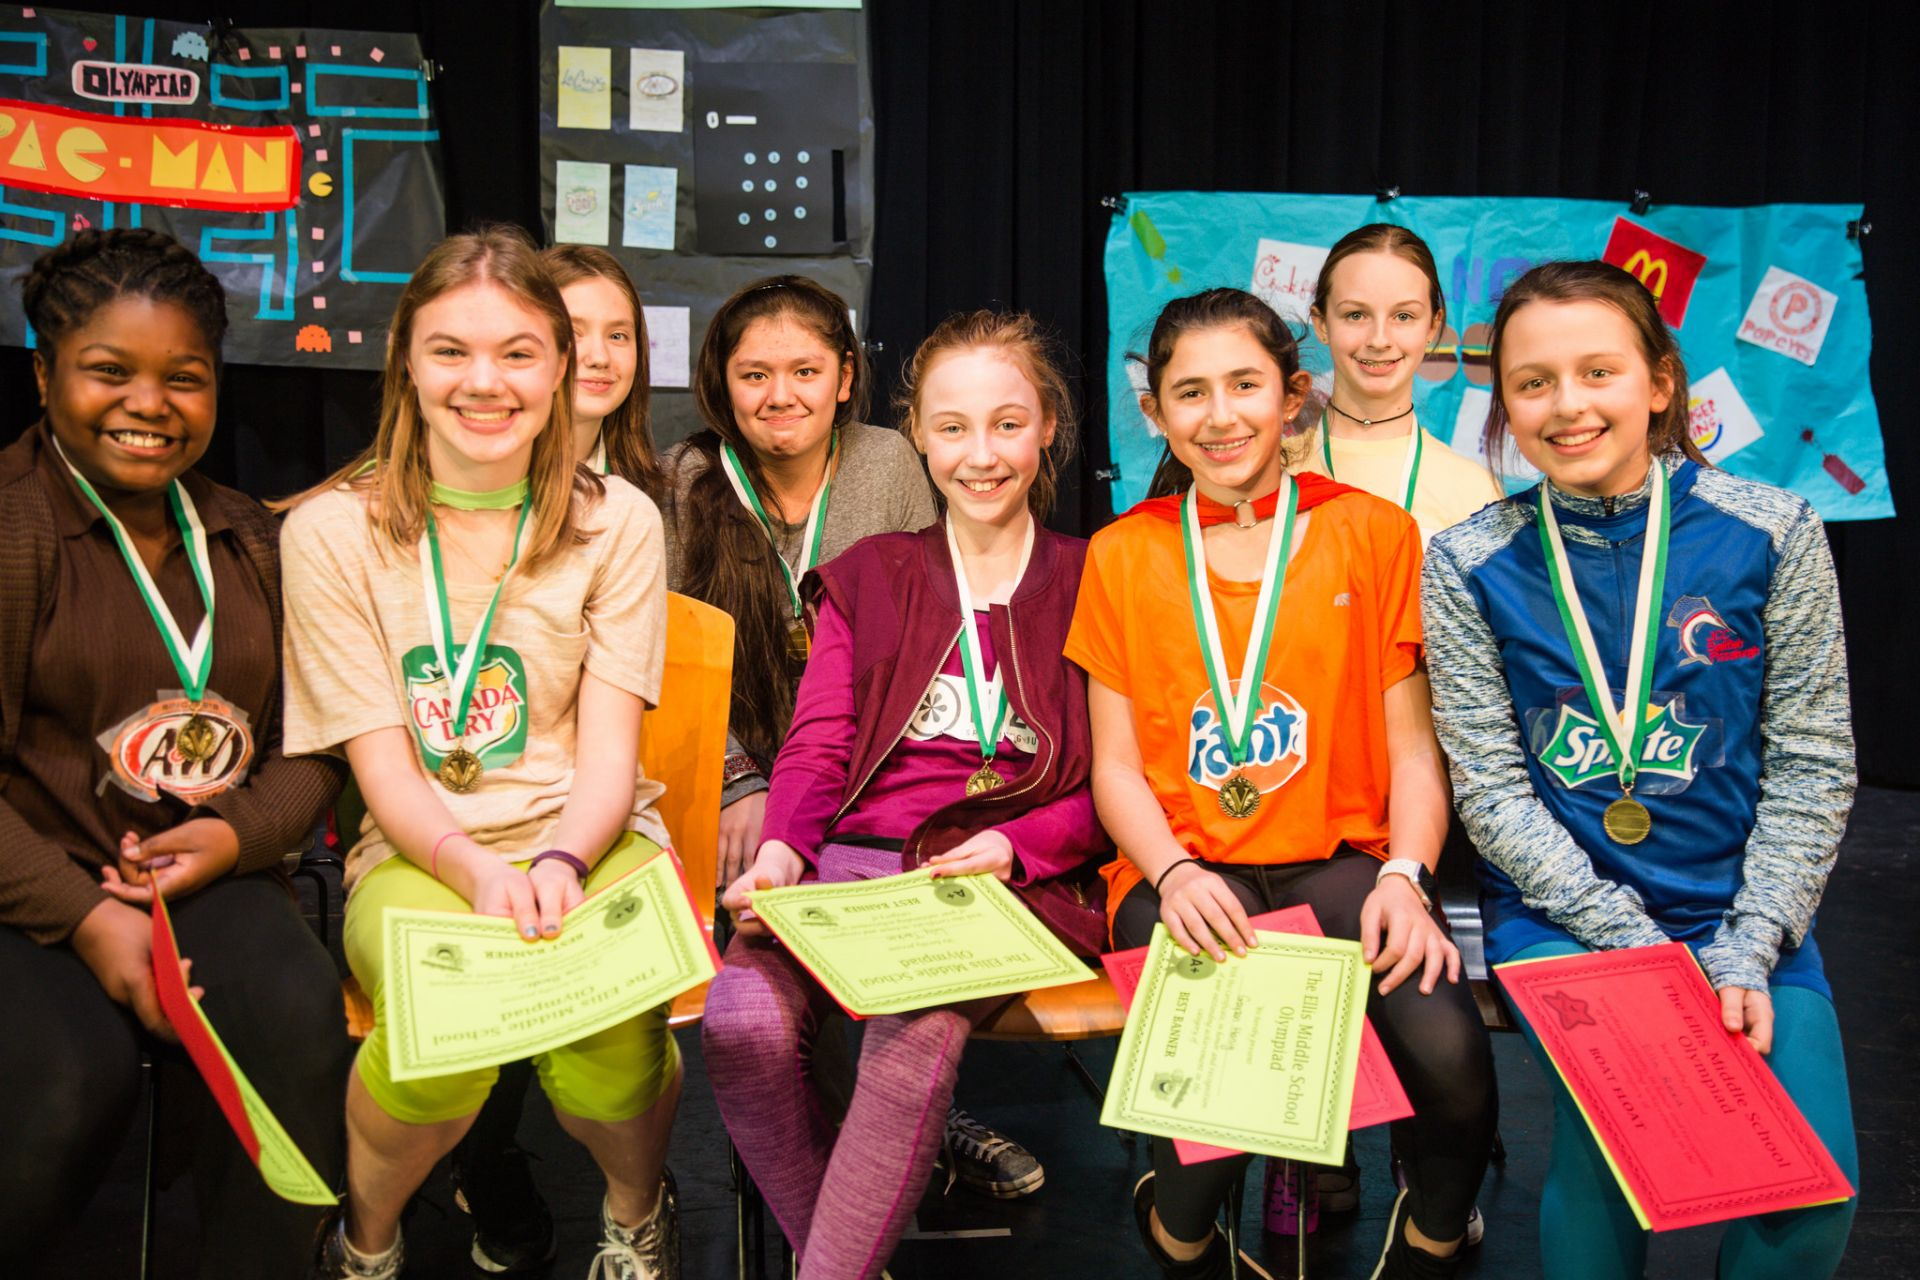 This is a photo of middle school students smiling after winning a competition.